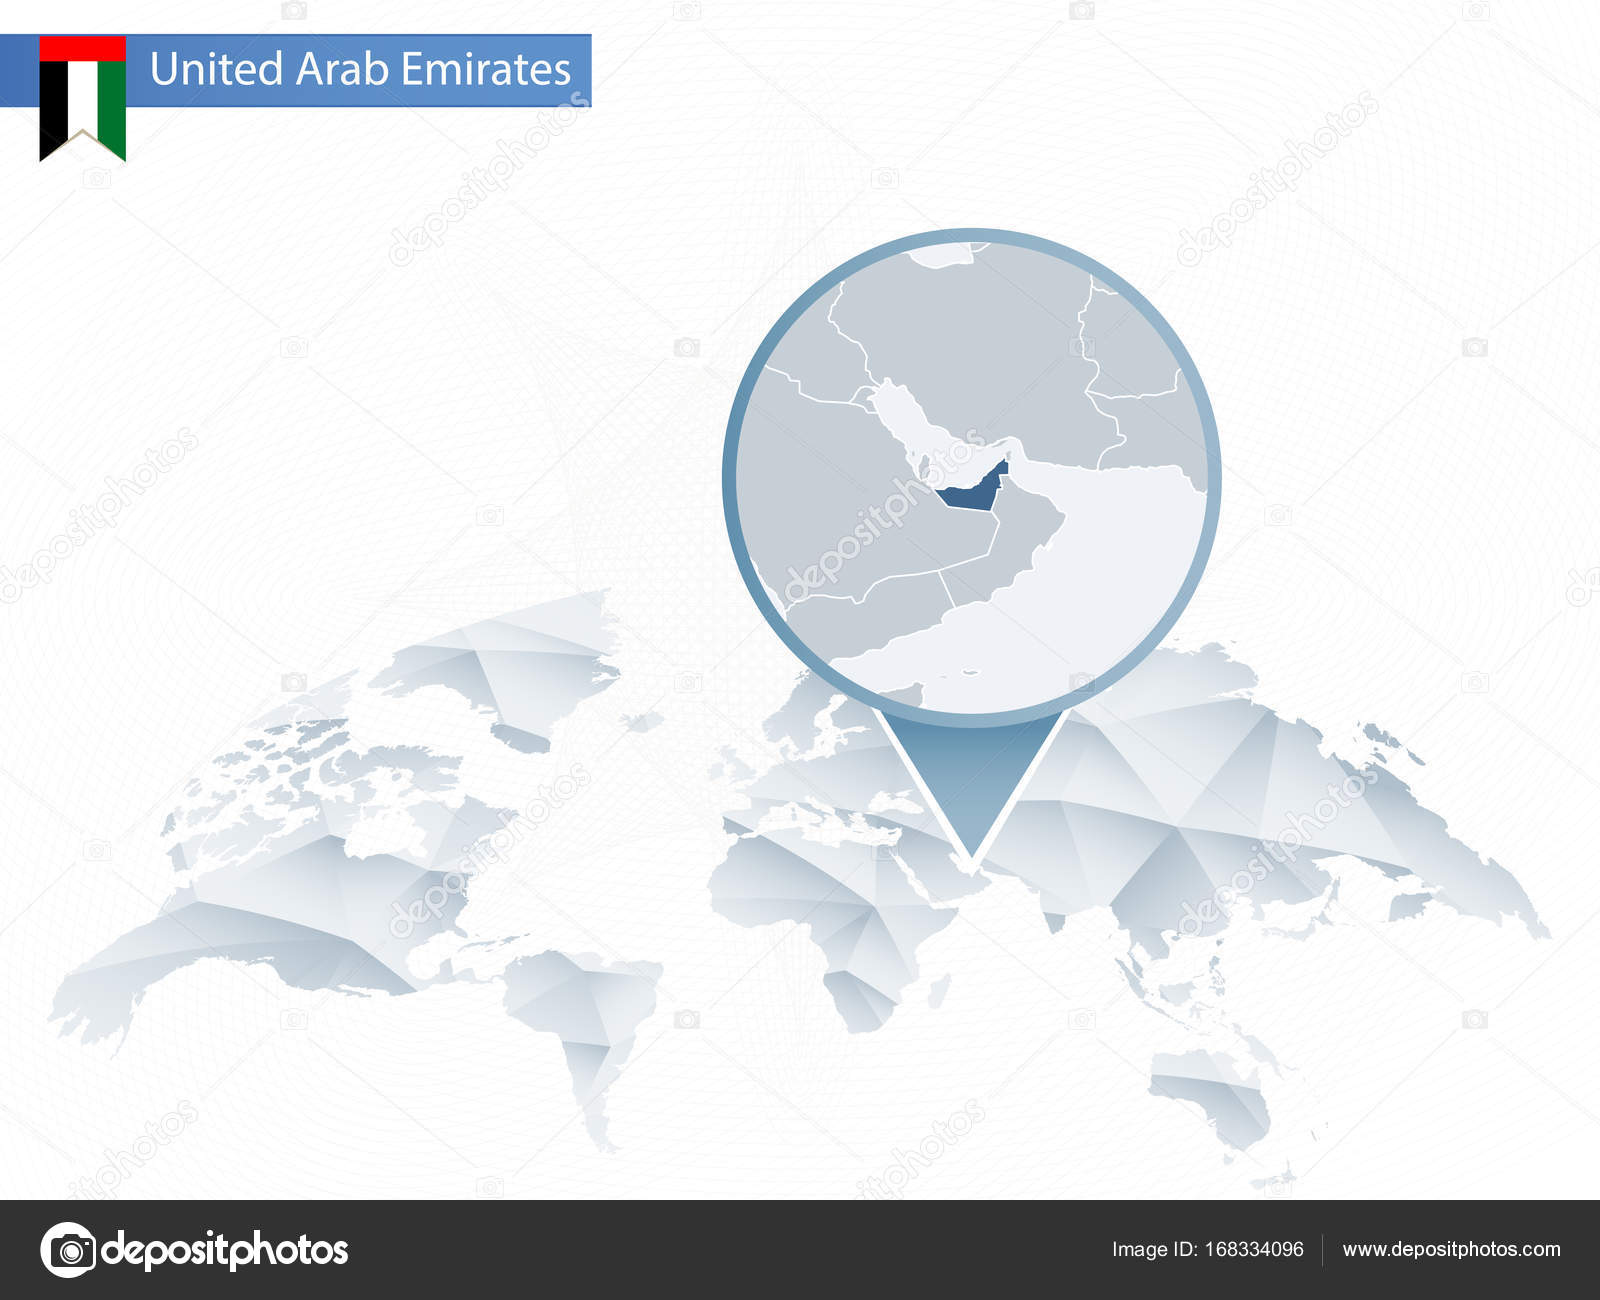 Abstract rounded World Map with pinned detailed United Arab ... on austria world map, slovakia world map, kuwait world map, norway world map, guatemala world map, sierra leone world map, cambodia world map, bahrain world map, uzbekistan world map, iraq world map, sudan world map, china world map, pakistan world map, jordan world map, afghanistan world map, persian gulf map, cyprus world map, arabian sea world map, uganda world map, middle east map,